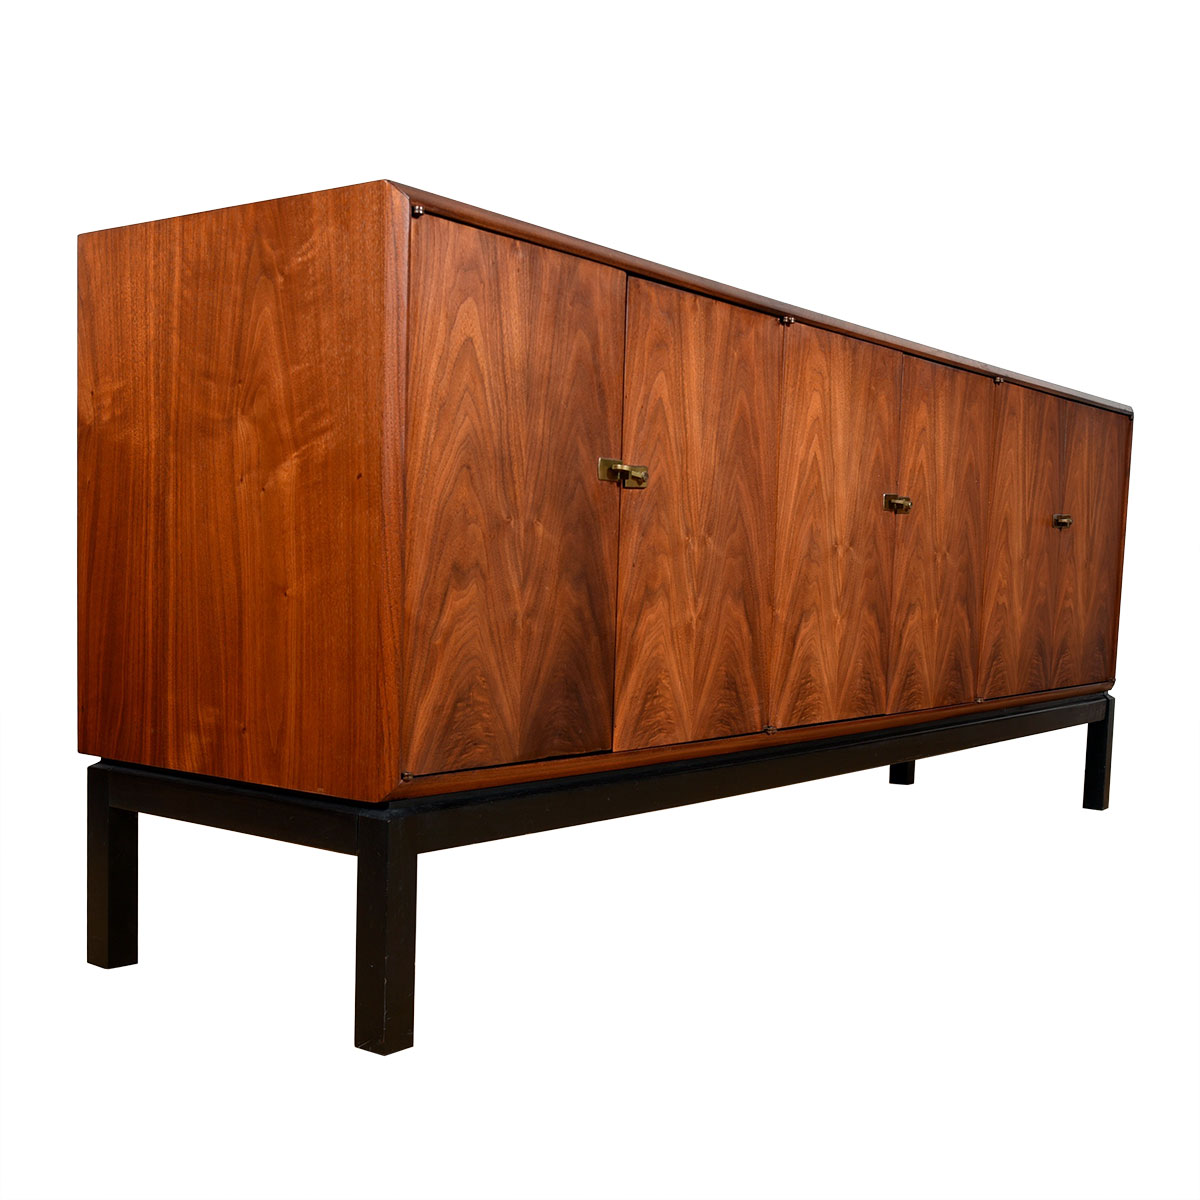 Asian-Inspired Mid Century Walnut Long Cabinet / Sideboard w/ Brass Latches